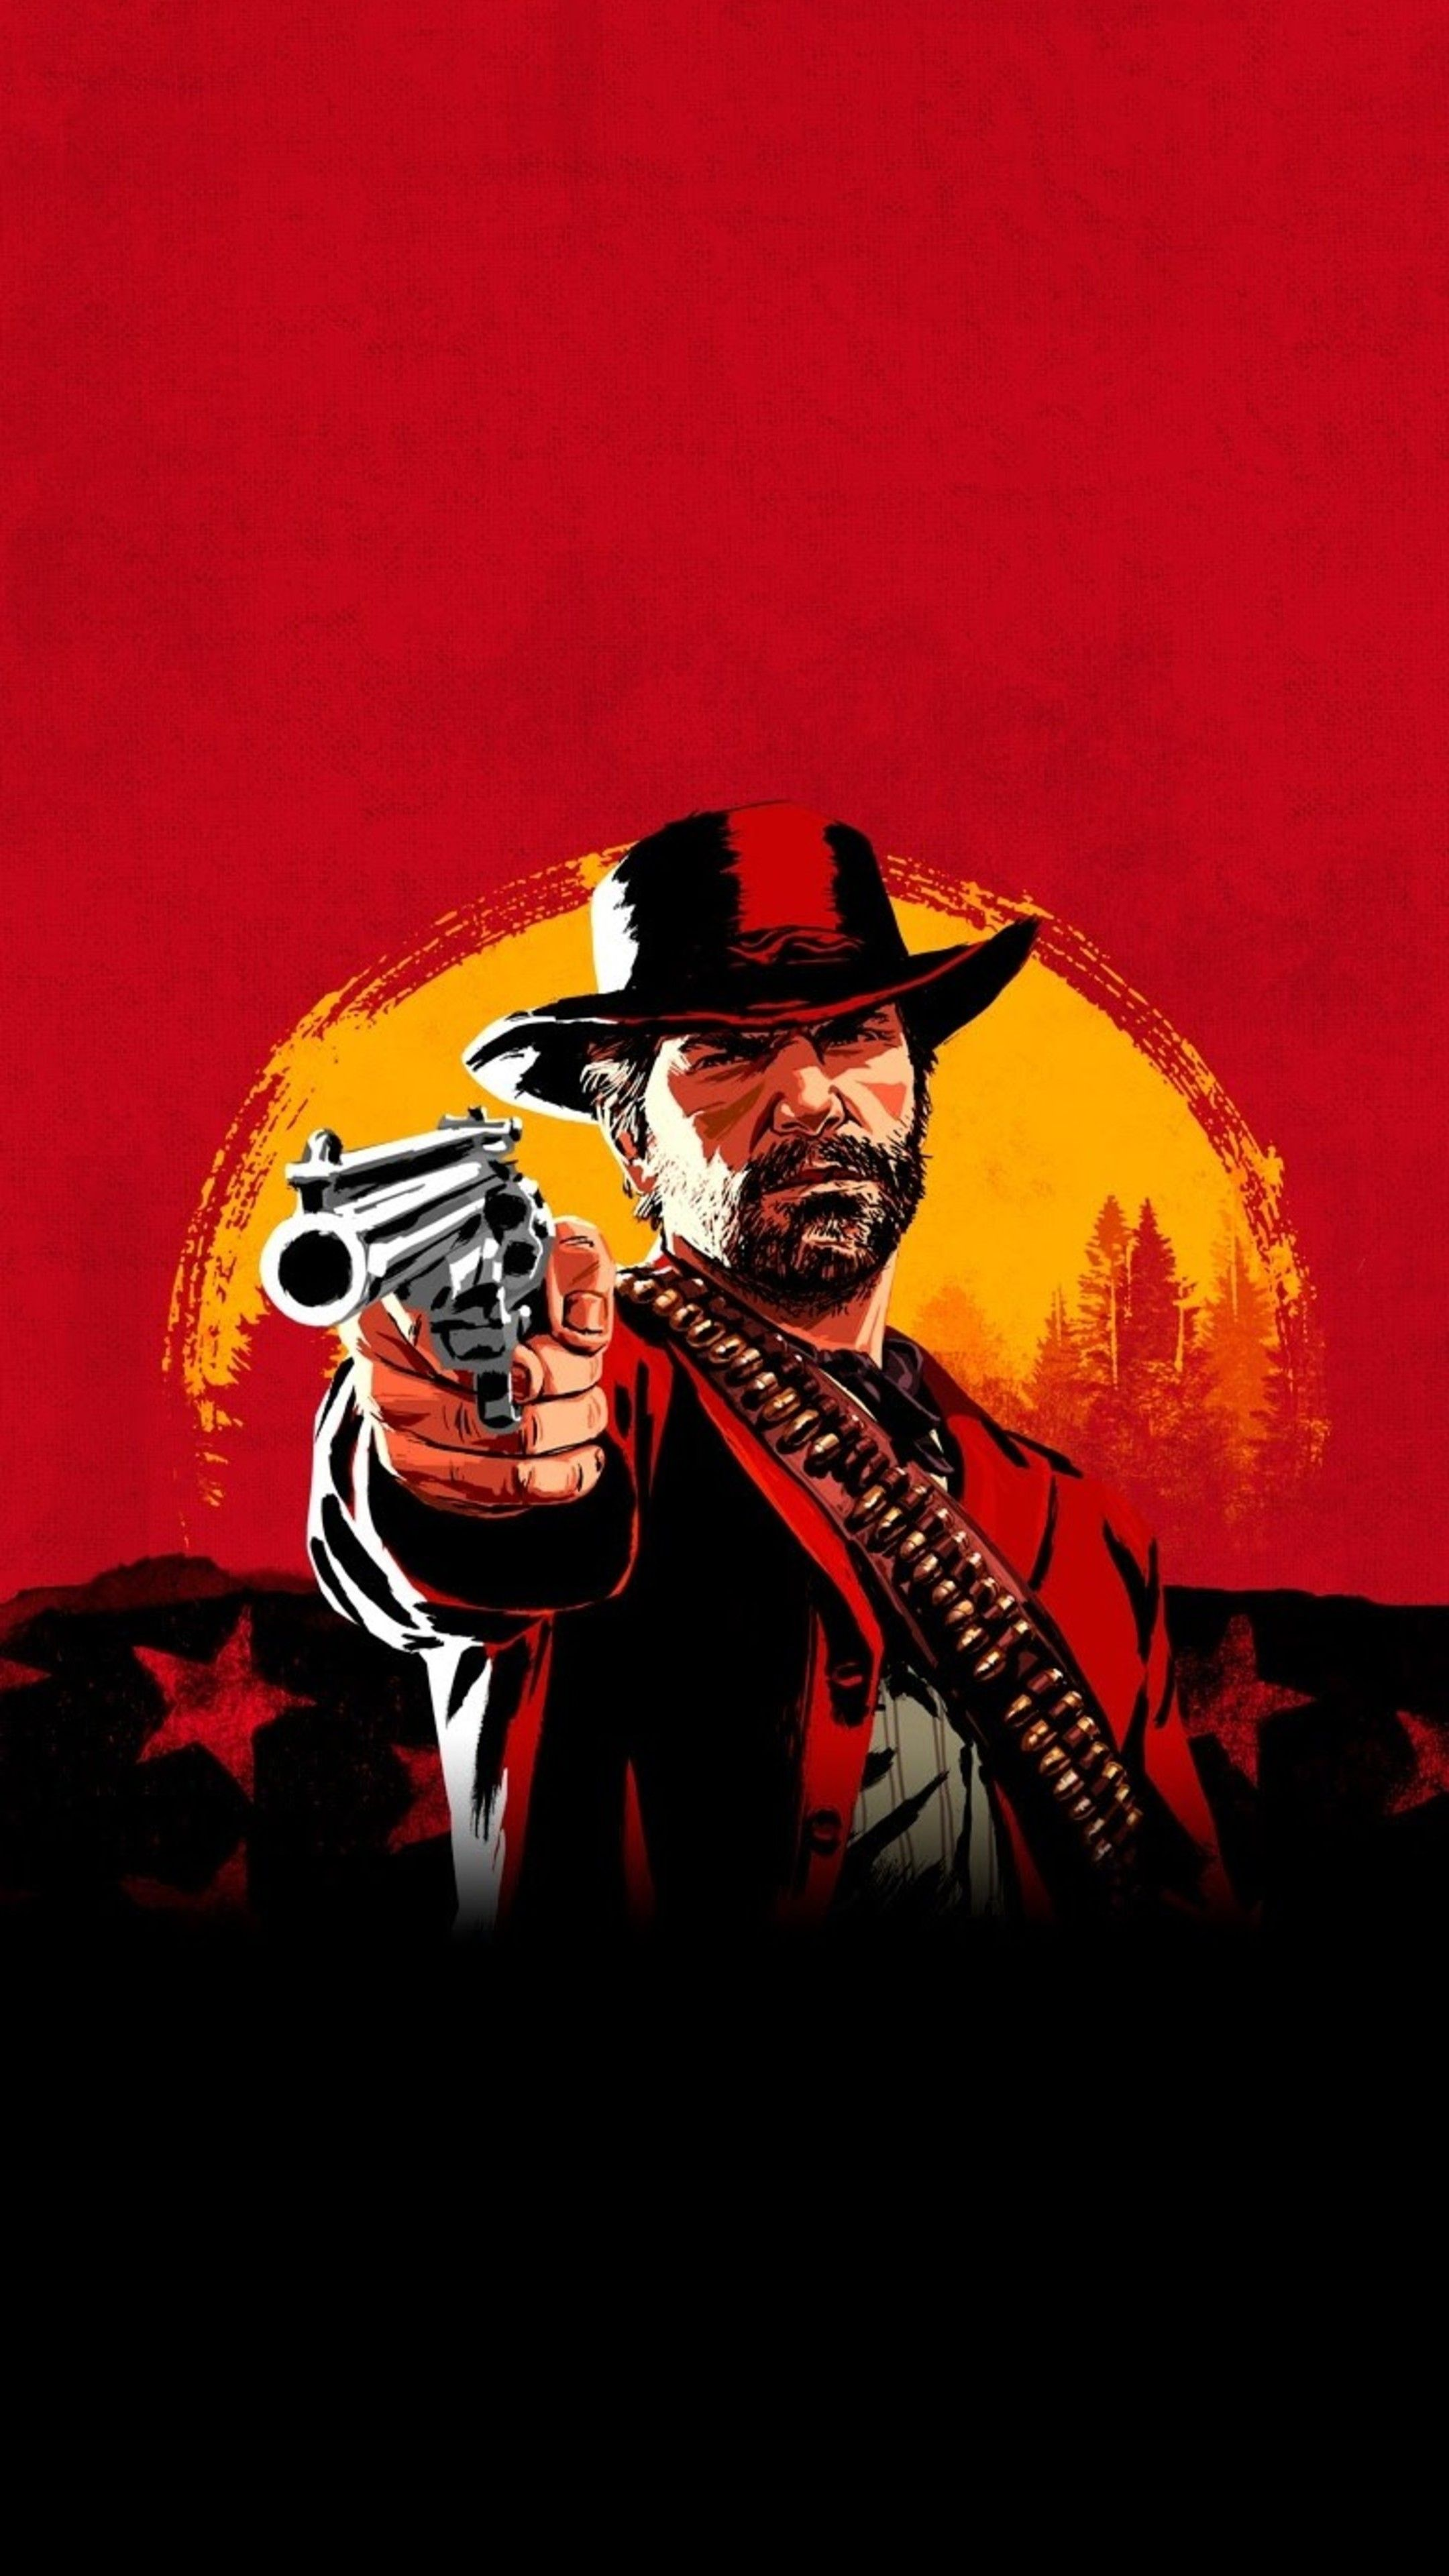 Misc Red Dead Redemption 2 wallpapers hd 4k background